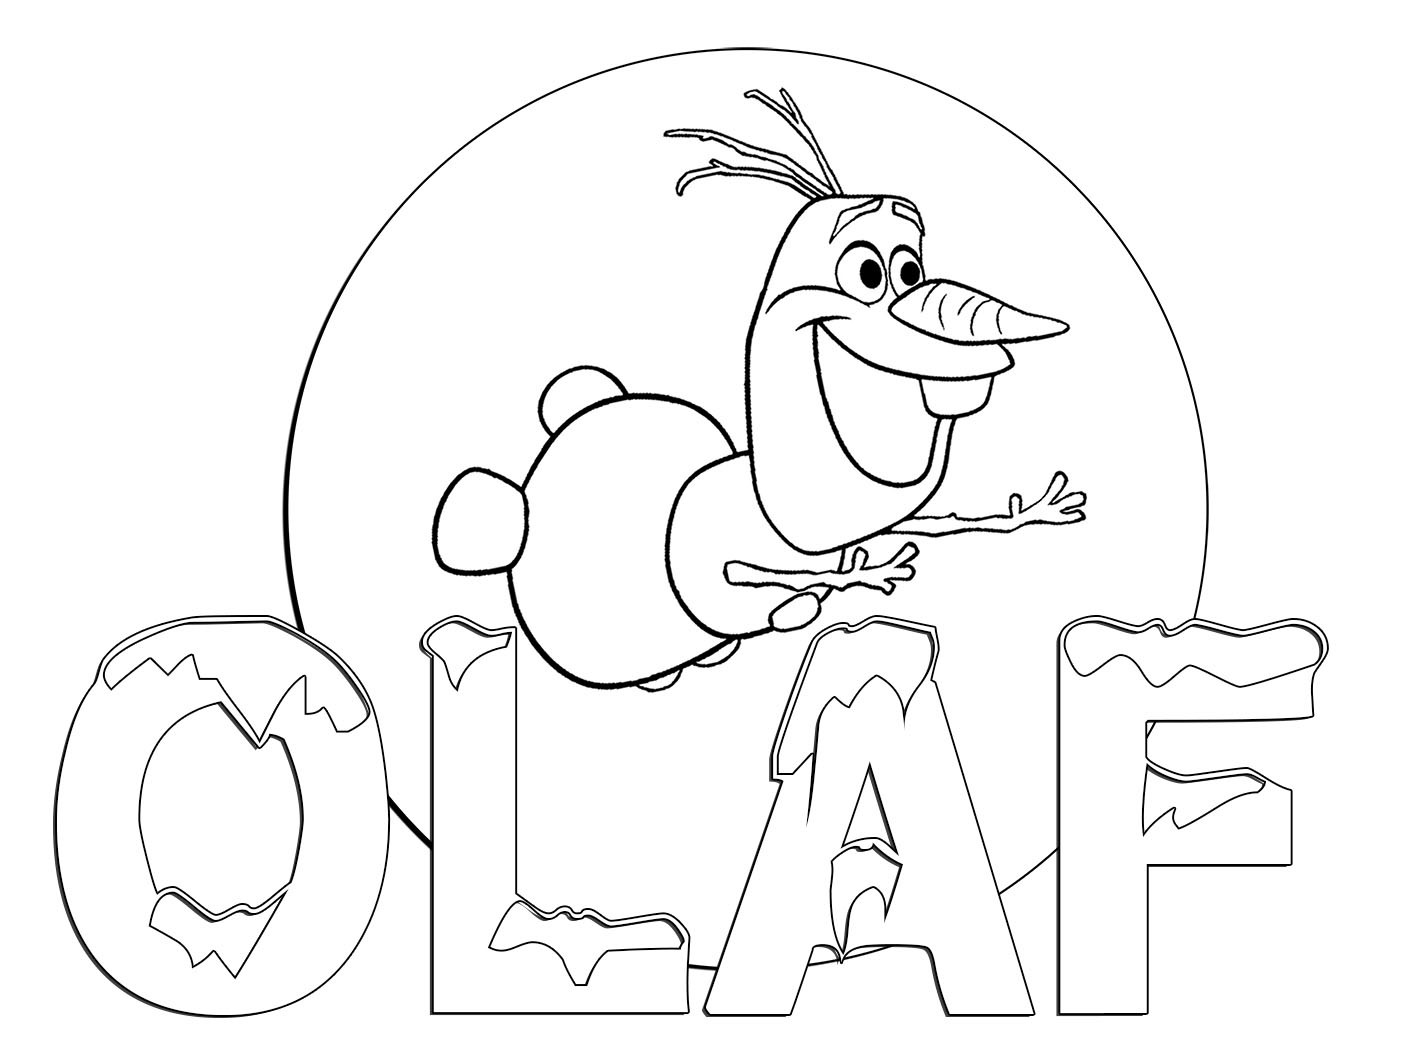 Free coloring pages printable frozen - Olaf Coloring Page